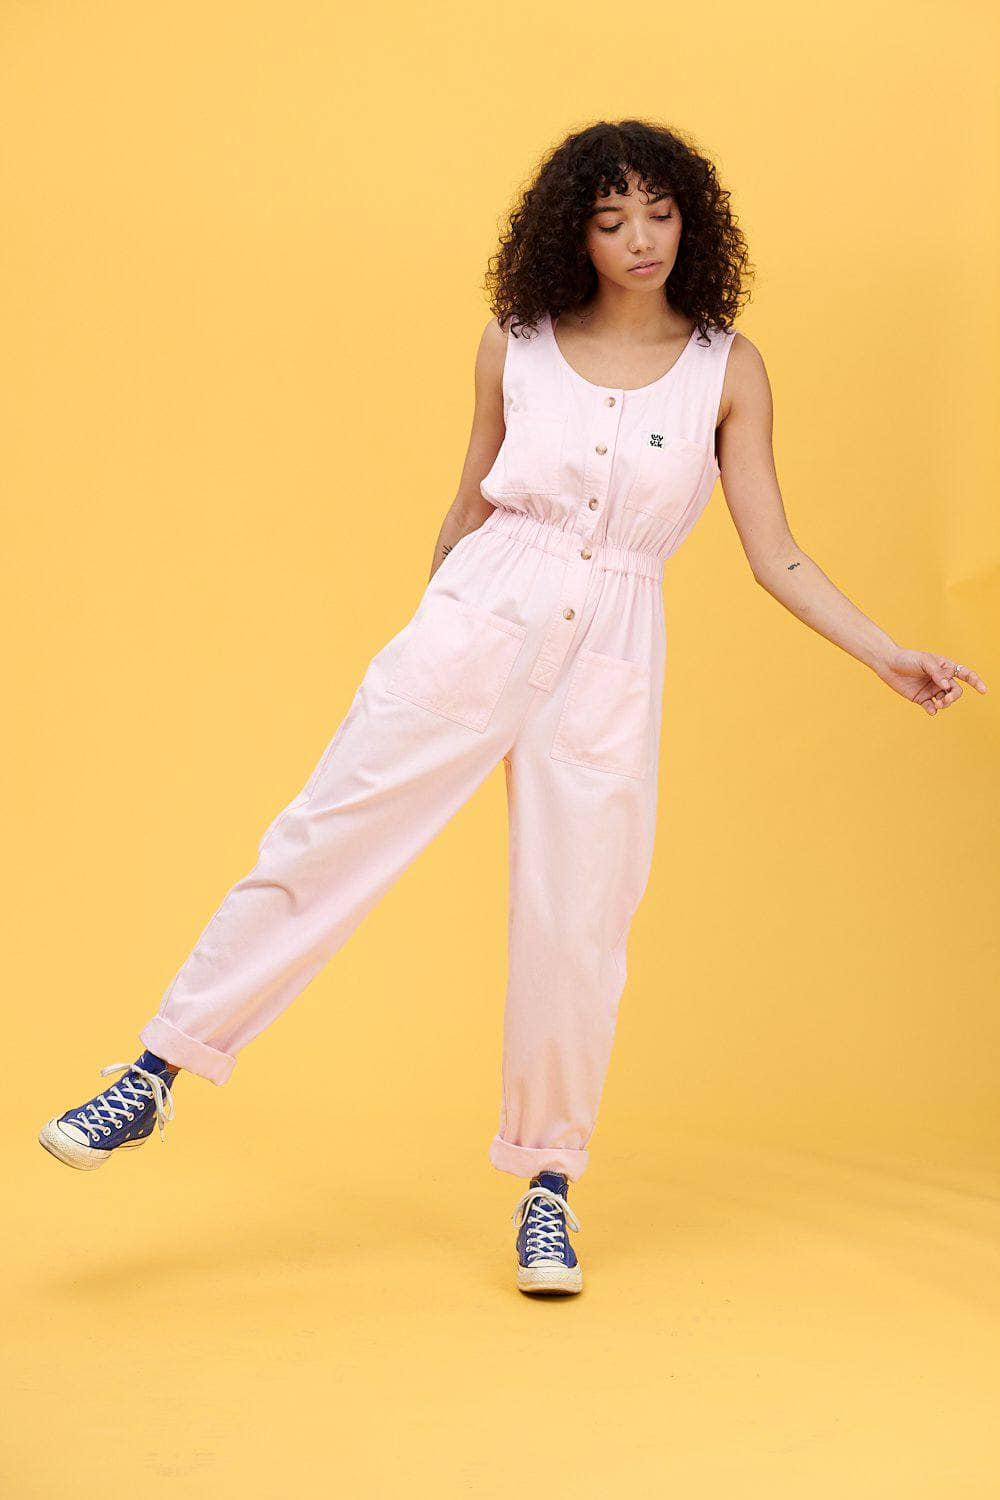 Lucy & Yak Boilersuit 'Juni' Linen/Cotton Sleeveless Boilersuit in Pink